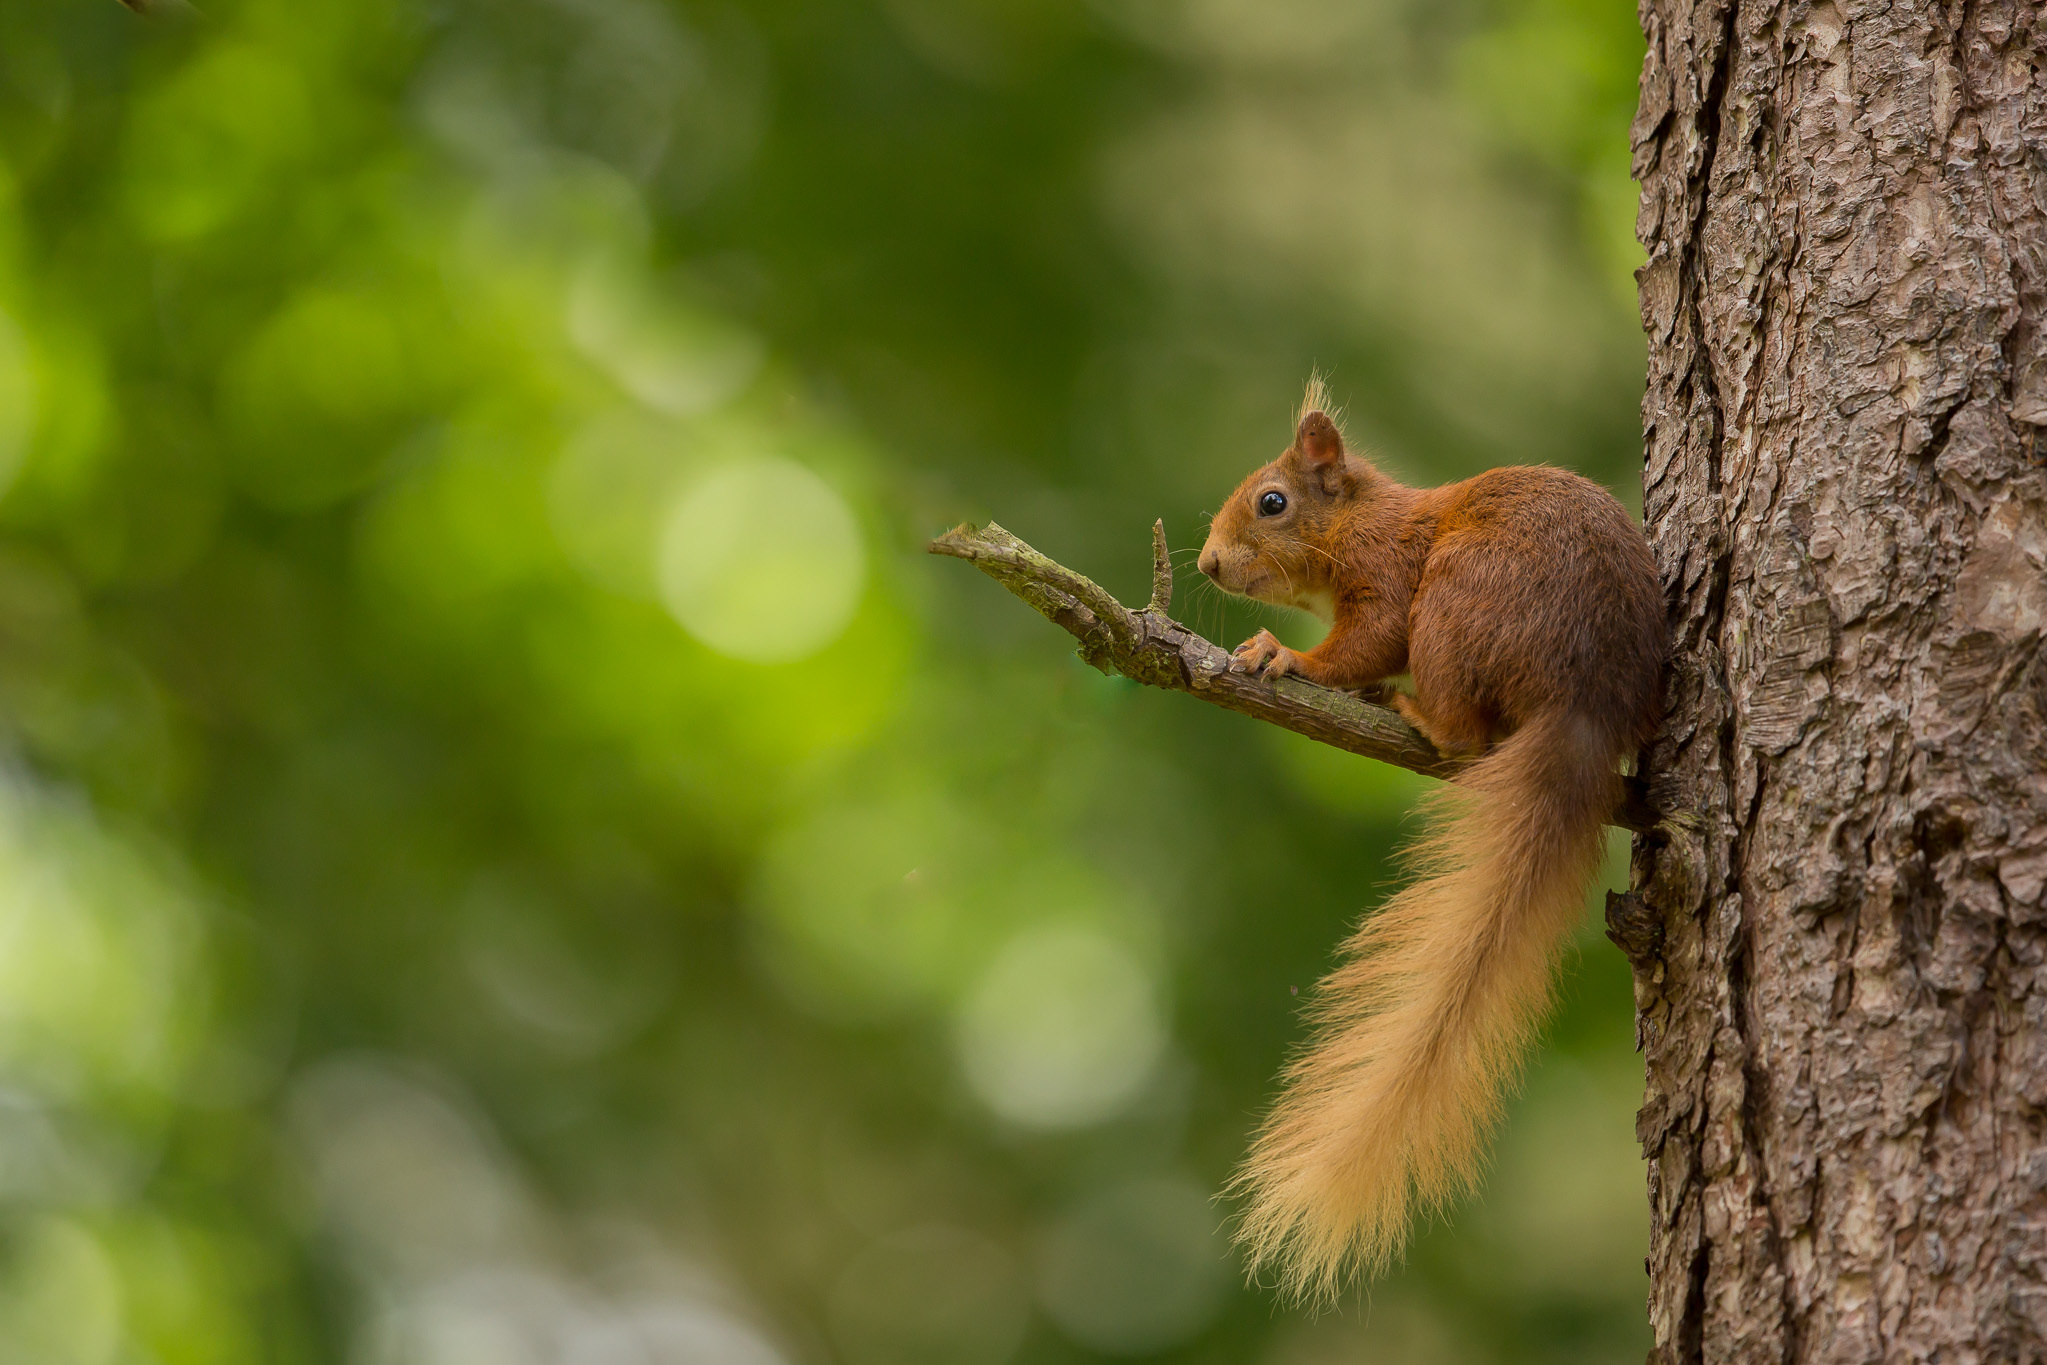 Red squirrel. Credit - Raymond Leinster